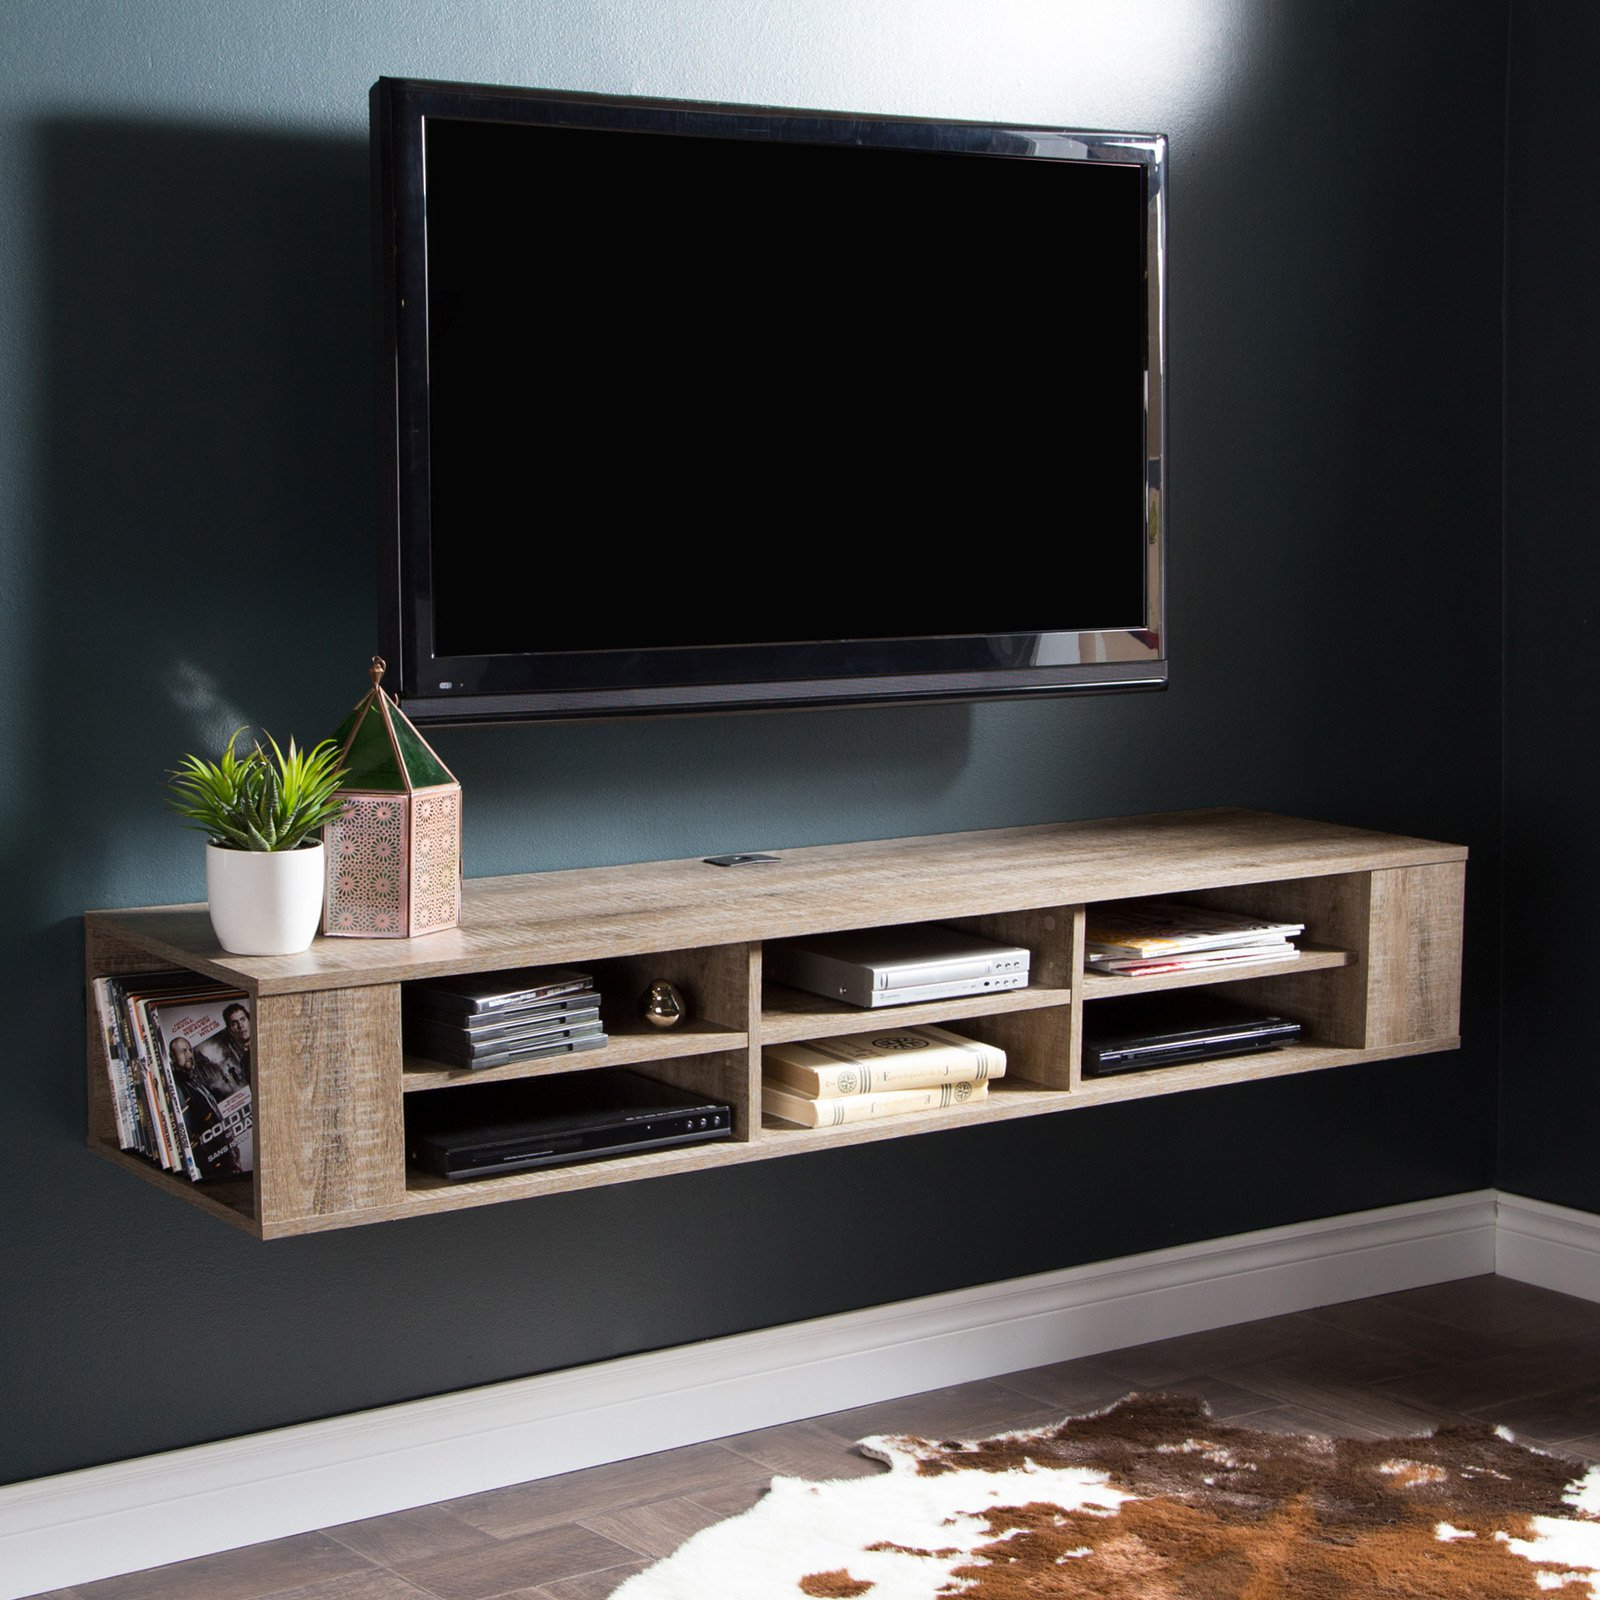 2020 Best Of Tv Stands With Storage Baskets